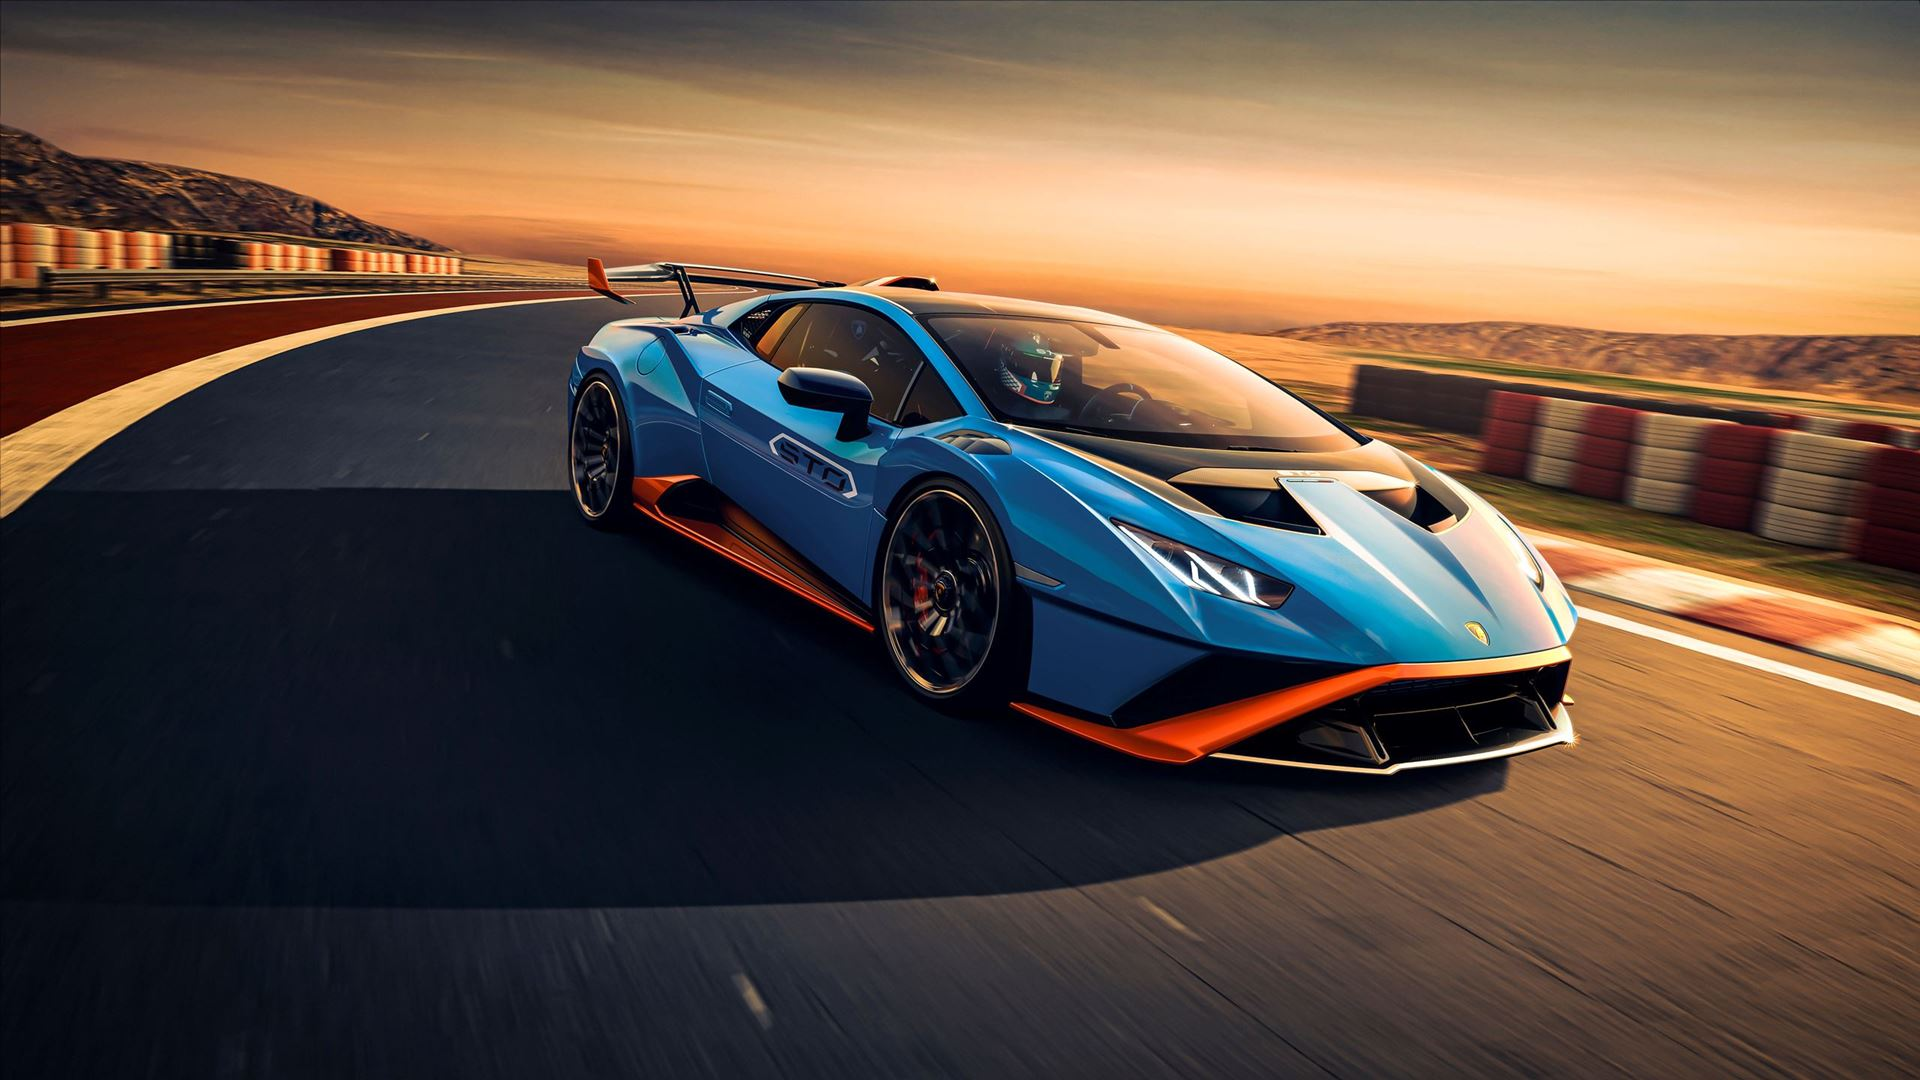 Racetrack to road: the new Lamborghini Huracán STO - Image 8